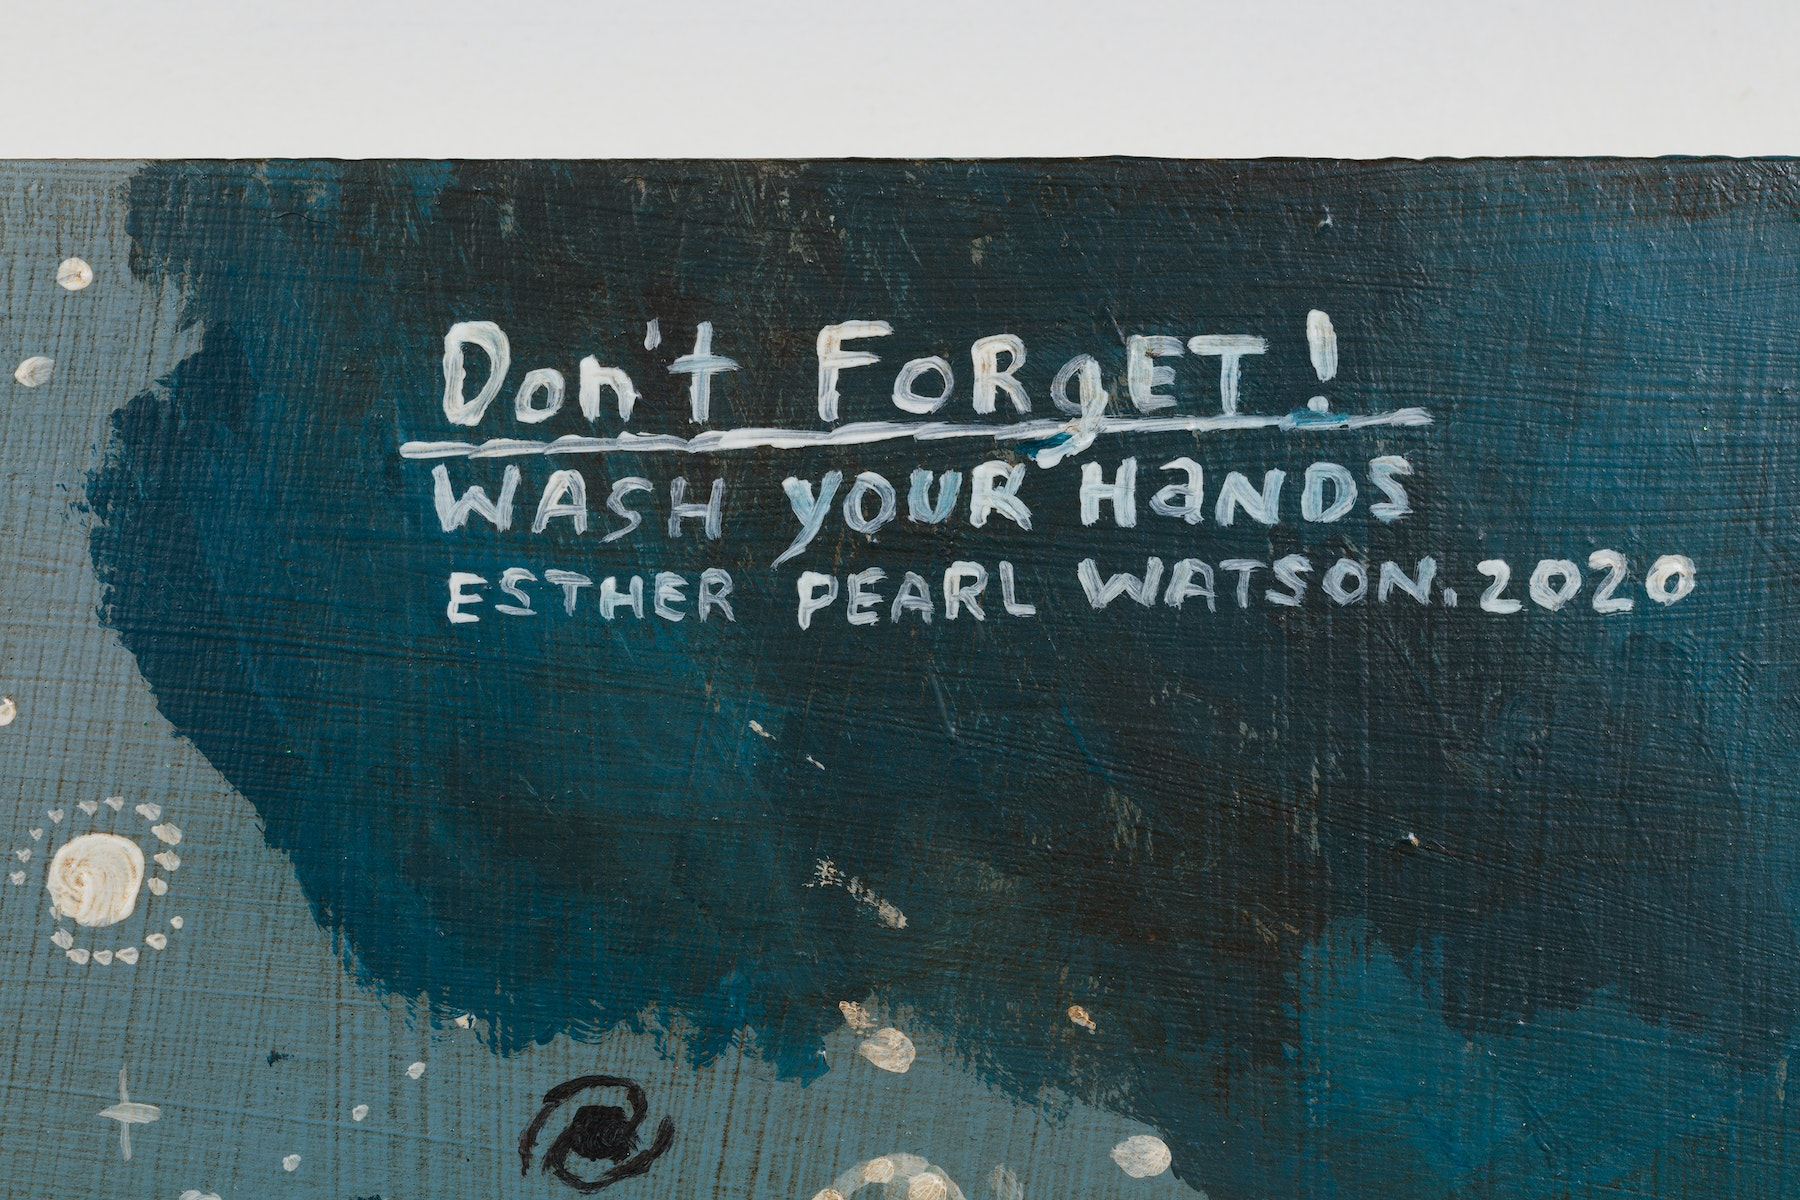 """Esther Pearl Watson """"Don't Forget! Wash Your Hands,"""" 2020 Acrylic, foil, foil paper, found mirror, graphite on panel 12 x 16"""" [HxW] (30.48 x 40.64 cm) Inventory #EPW216 Courtesy of the artist and Vielmetter Los Angeles Photo credit: Jeff McLane"""